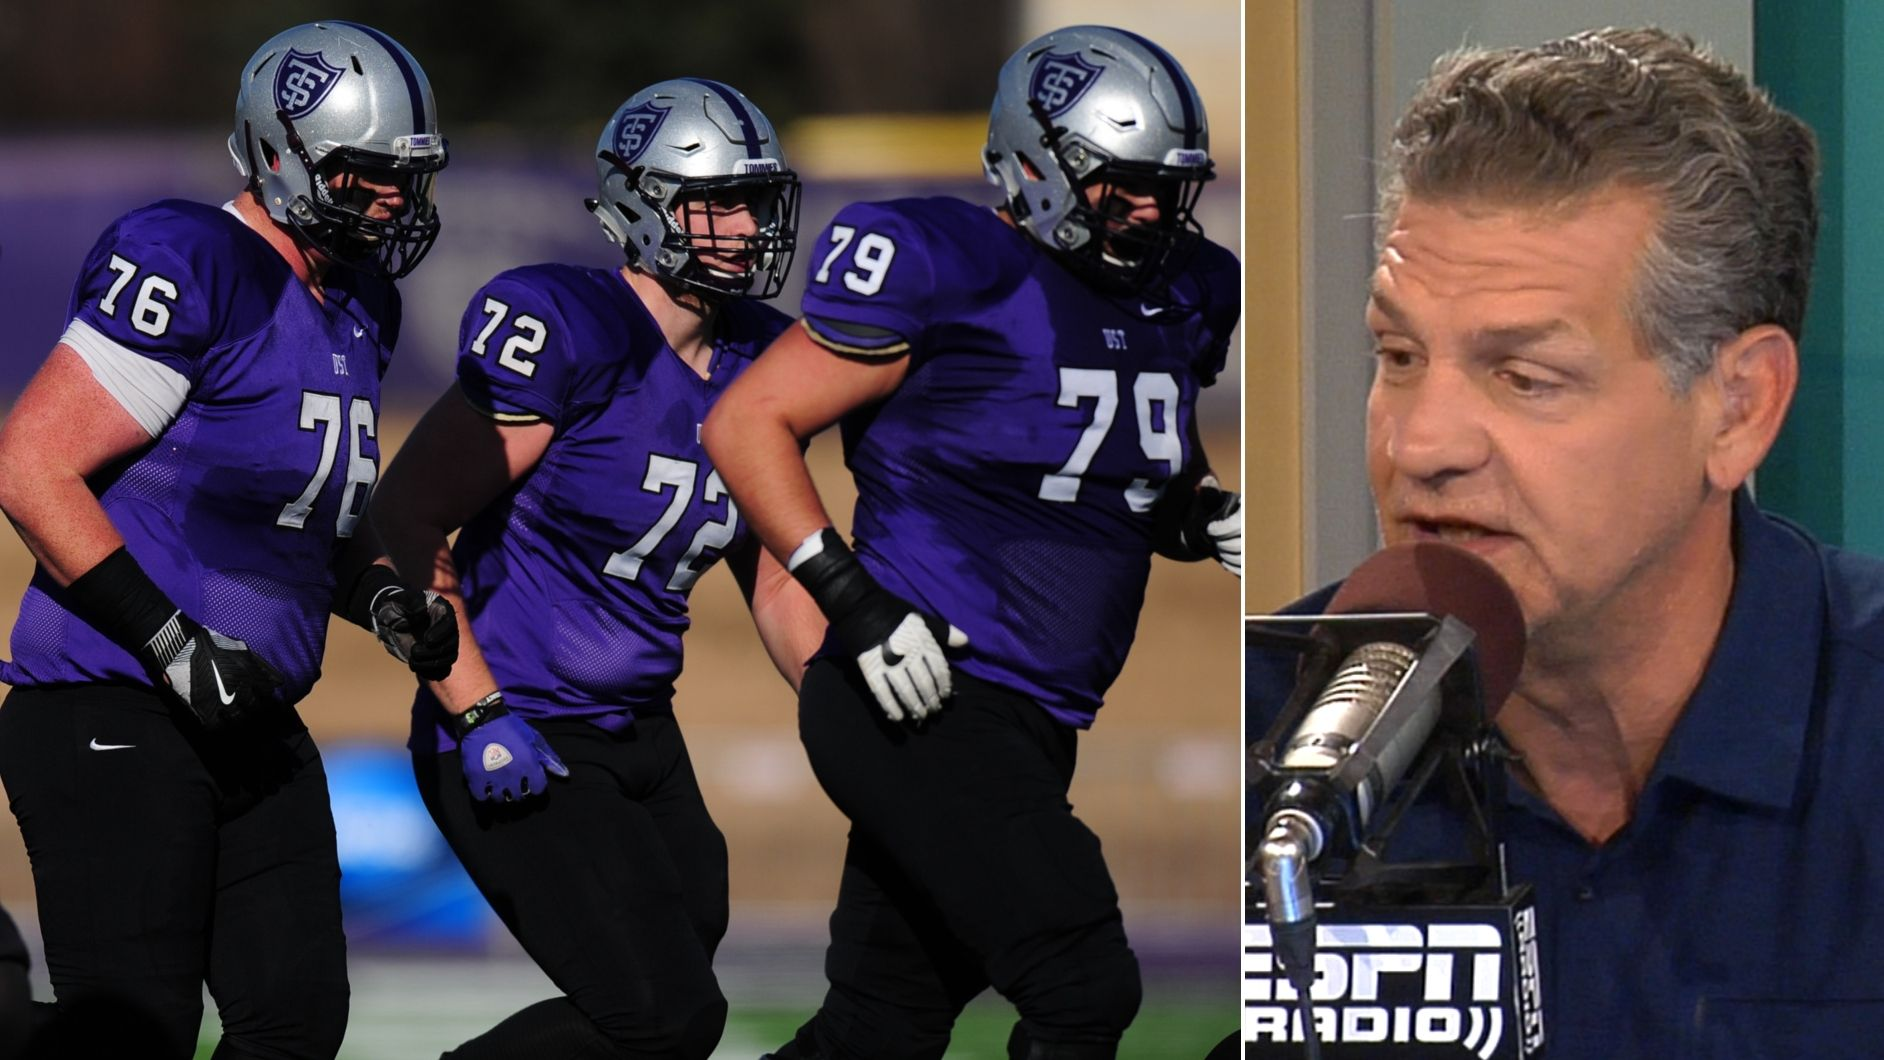 Golic suggests St. Thomas should be independent